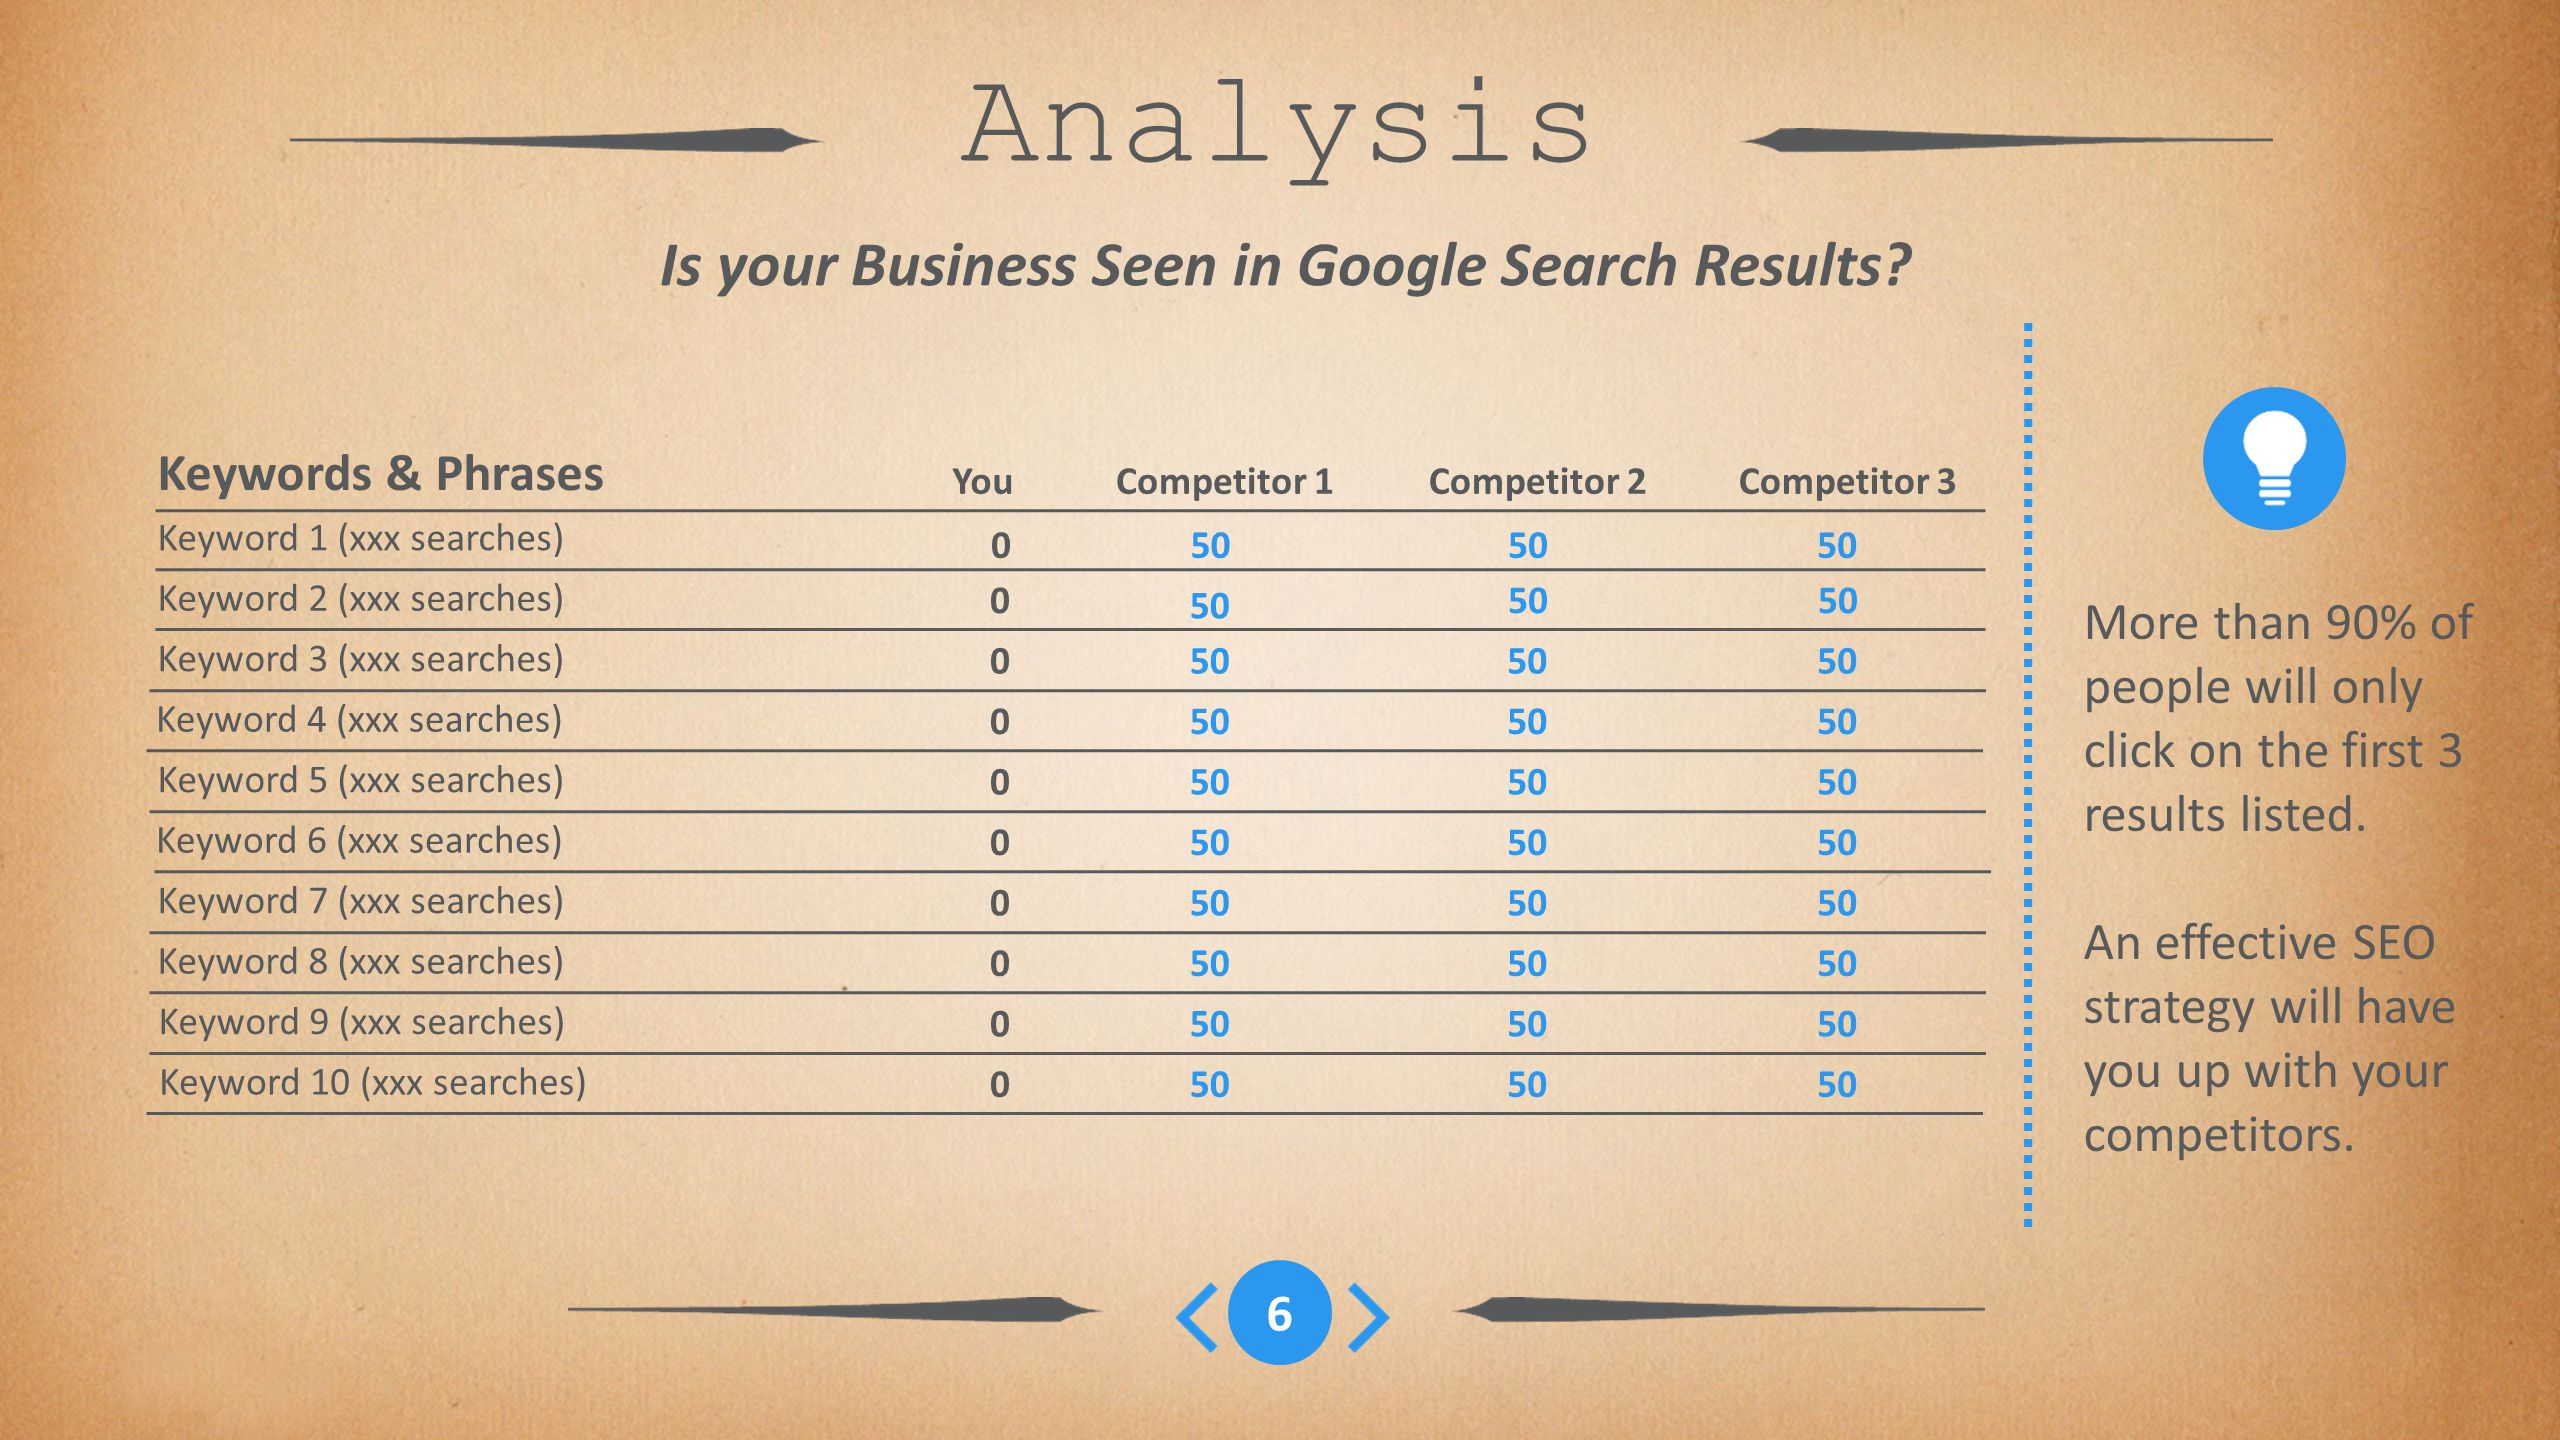 6 Analysis Is your Business Seen in Google Search Results.